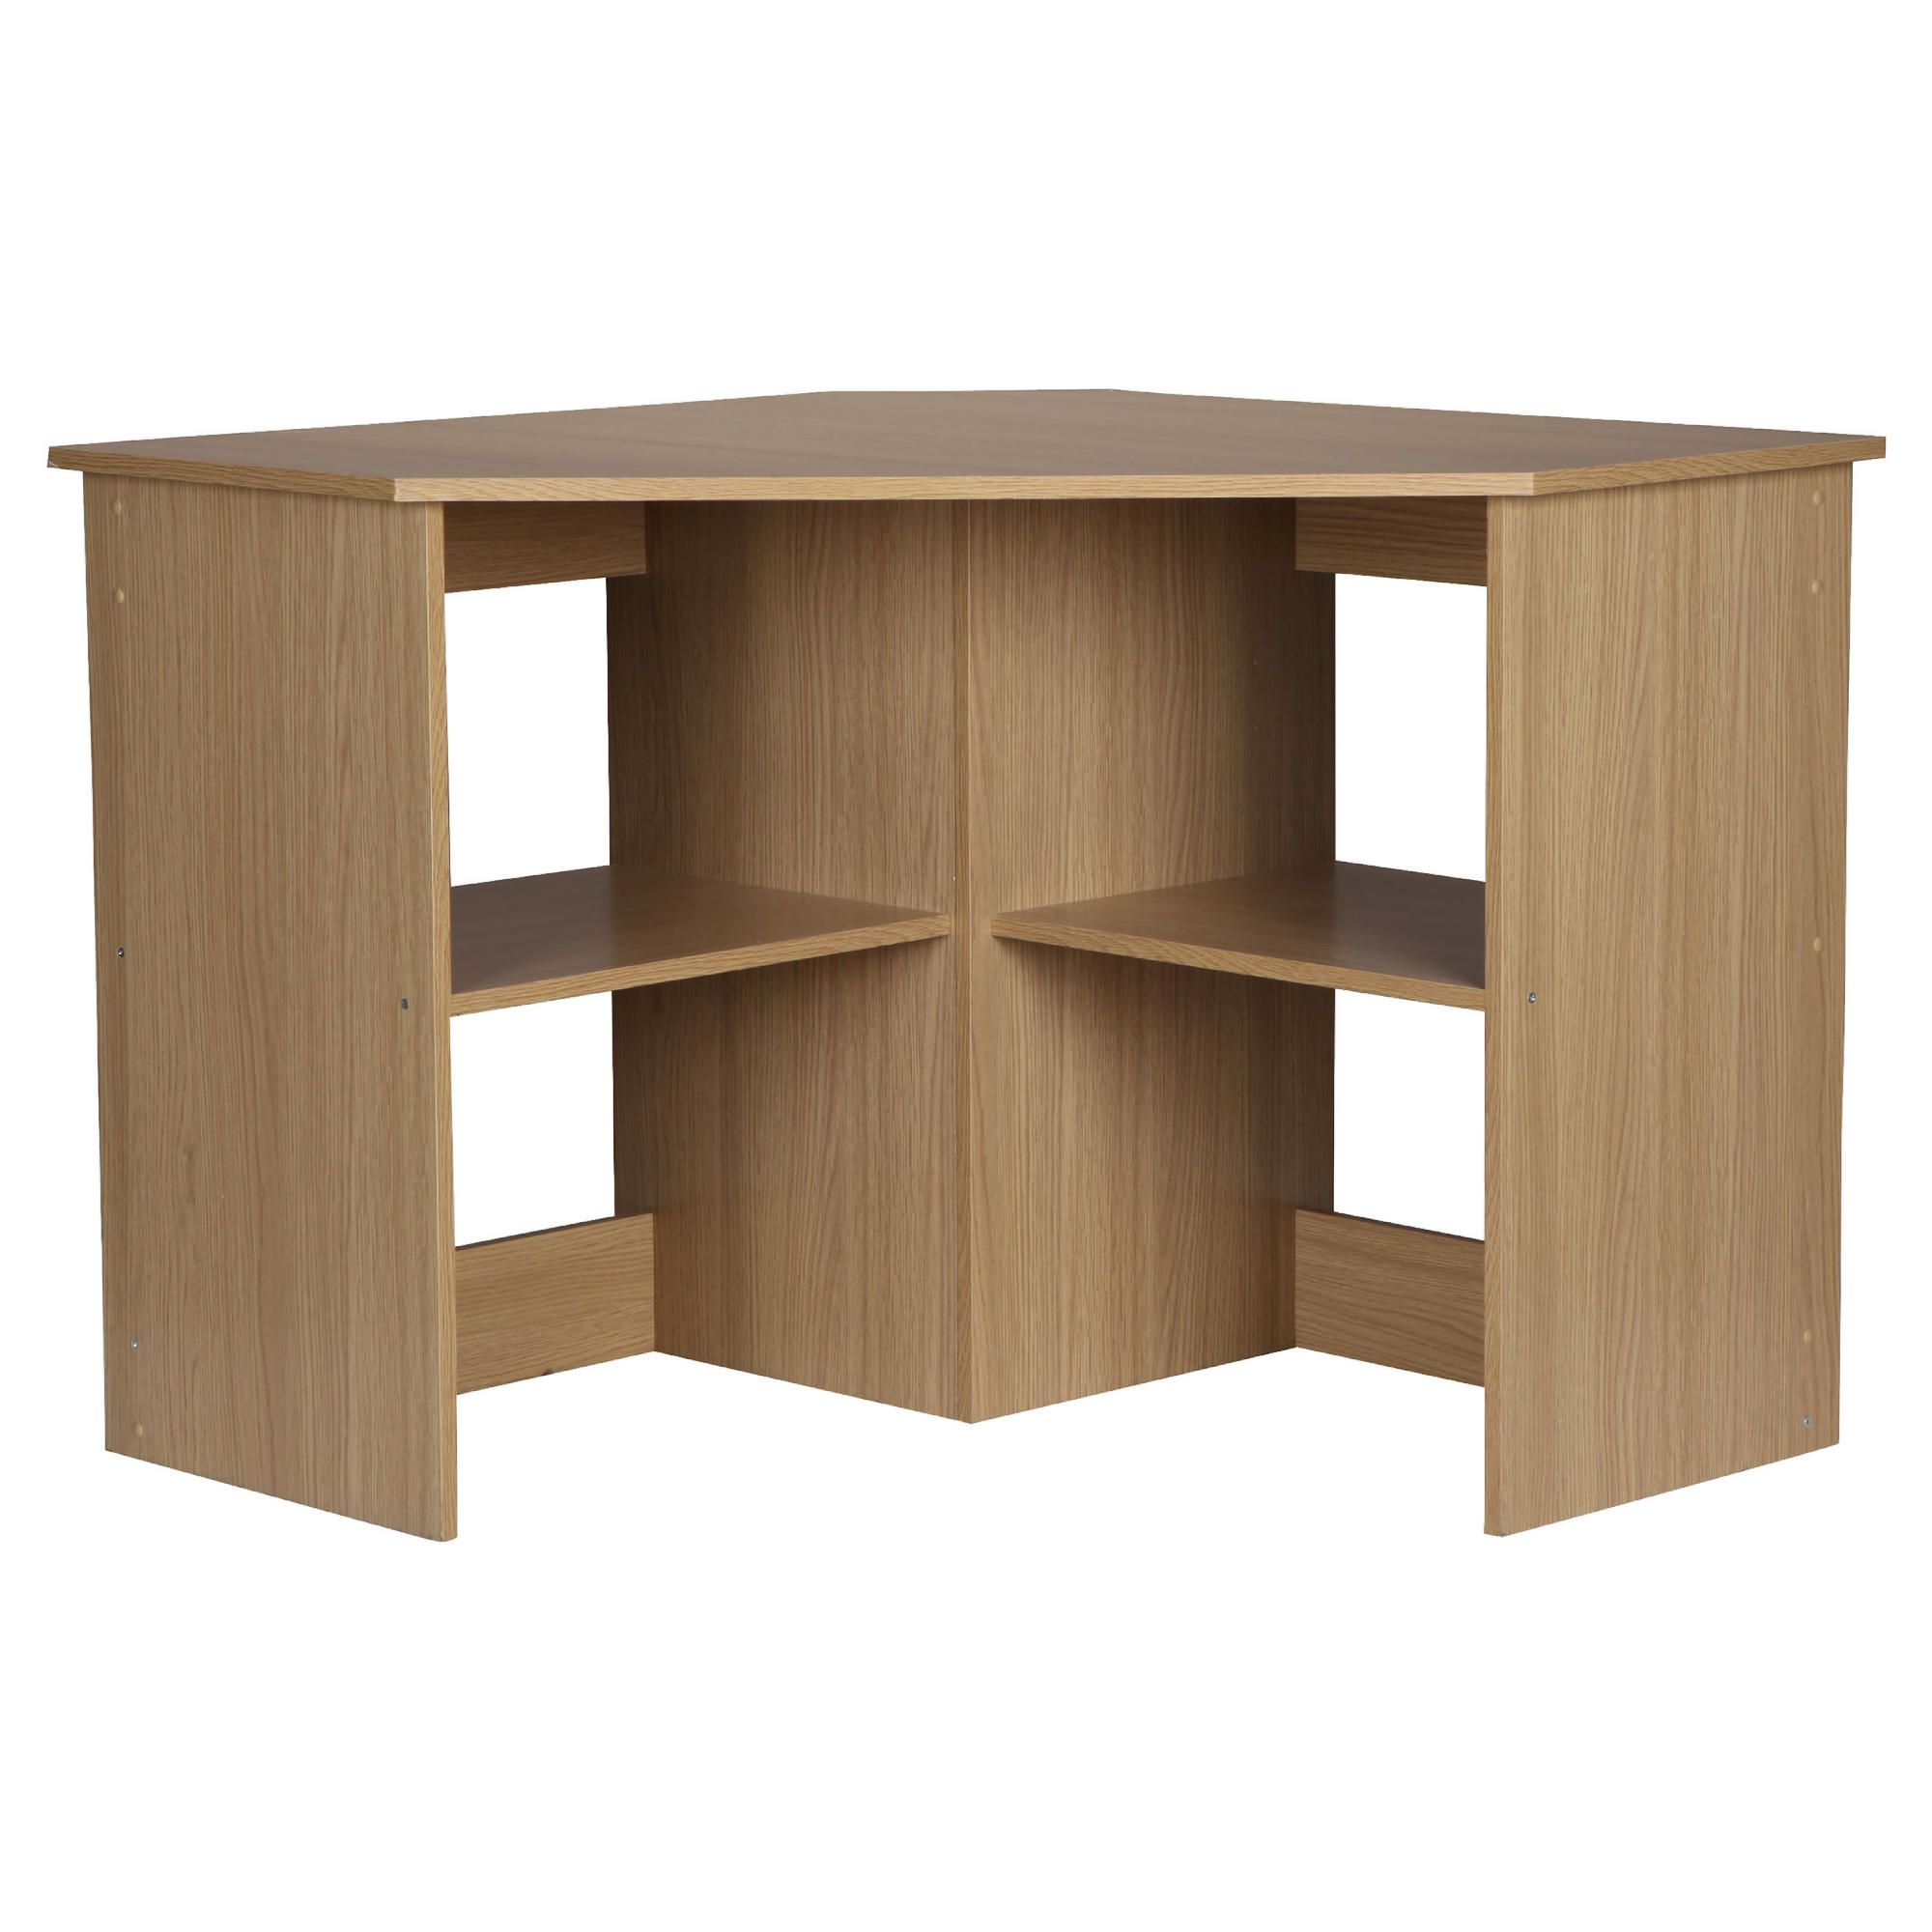 Uk office furniture affordable office supplies office furniture corner desks - Corner office desk ...